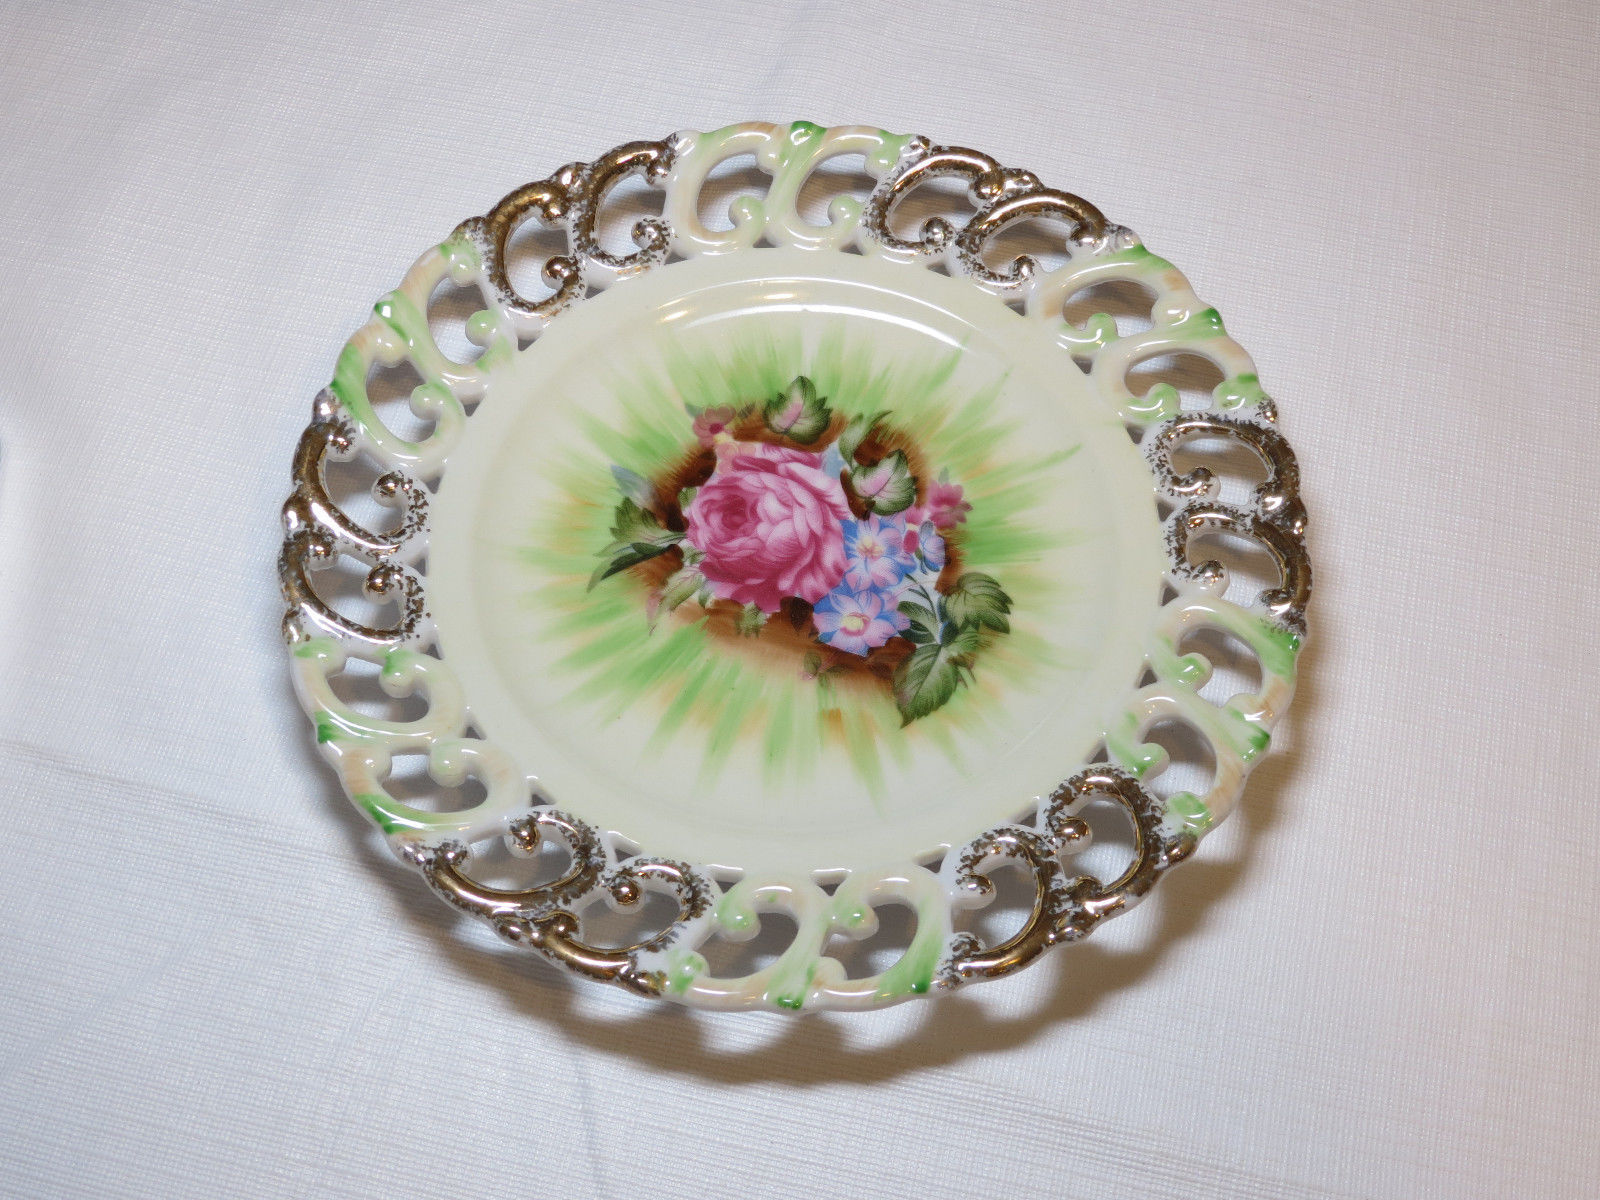 Primary image for Lenwile China Plate Rose Ardalt Japan hand painted 6679 vintage #%